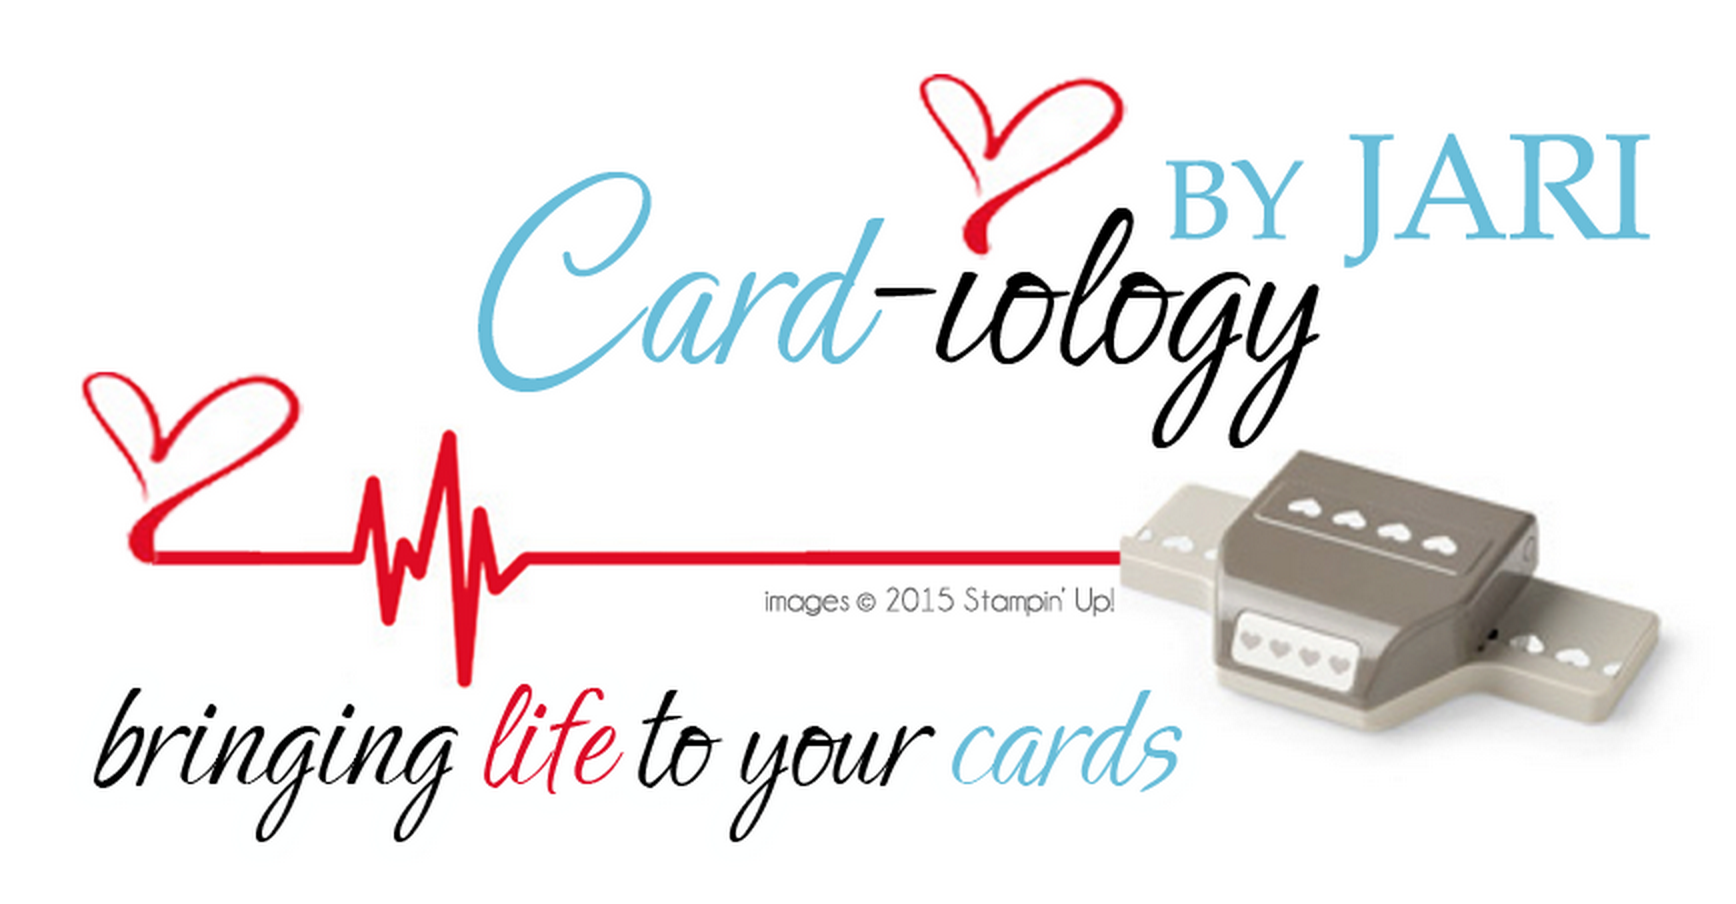 Card-iology By Jari